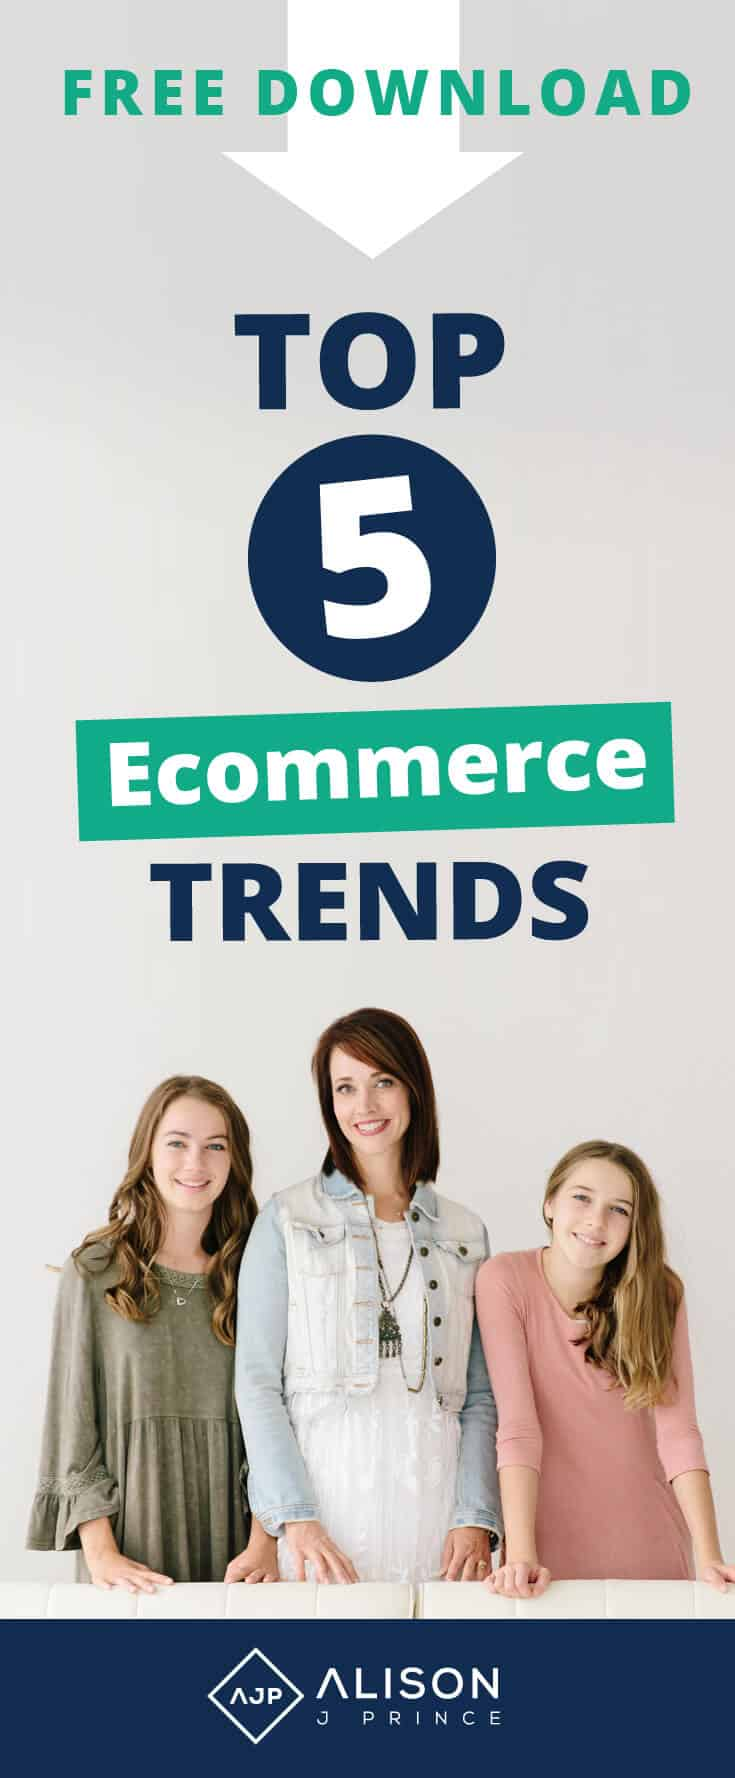 Alison Prince: Top 5 Ecommerce Trends